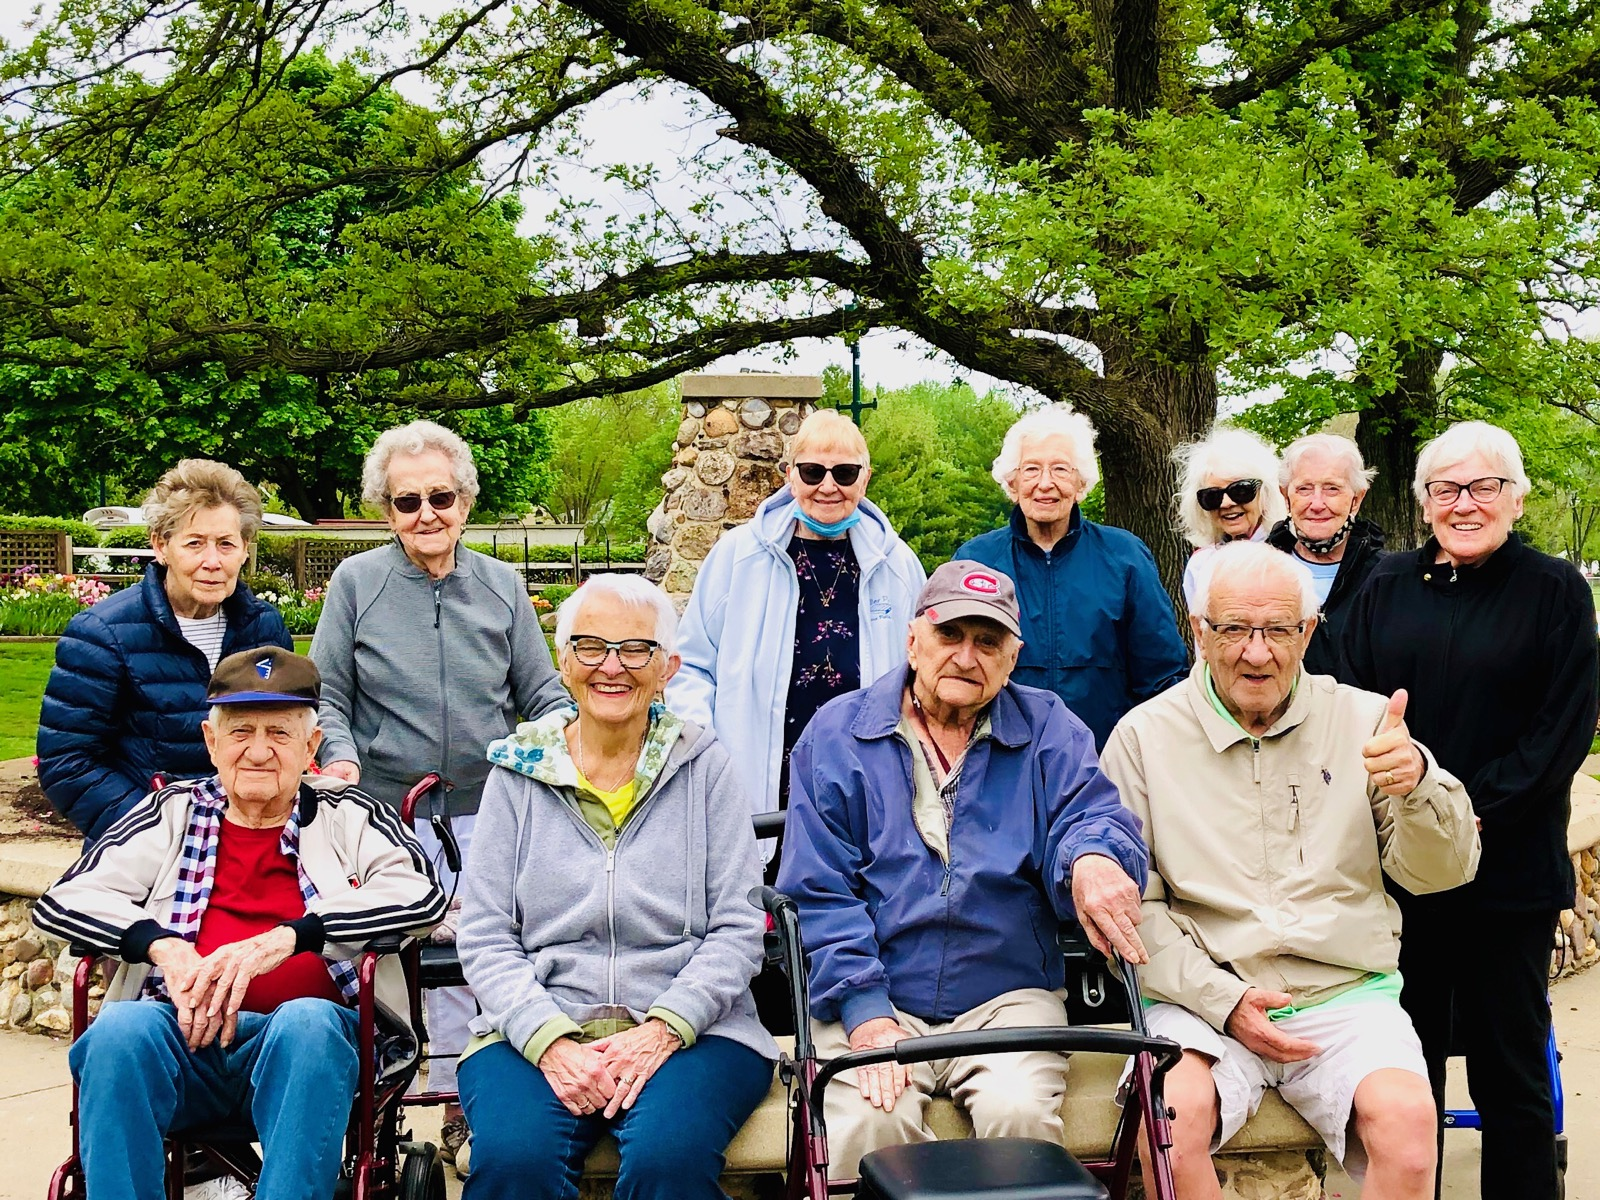 Residents enjoyed a trip to McKennen Park to view the beautiful flowers!